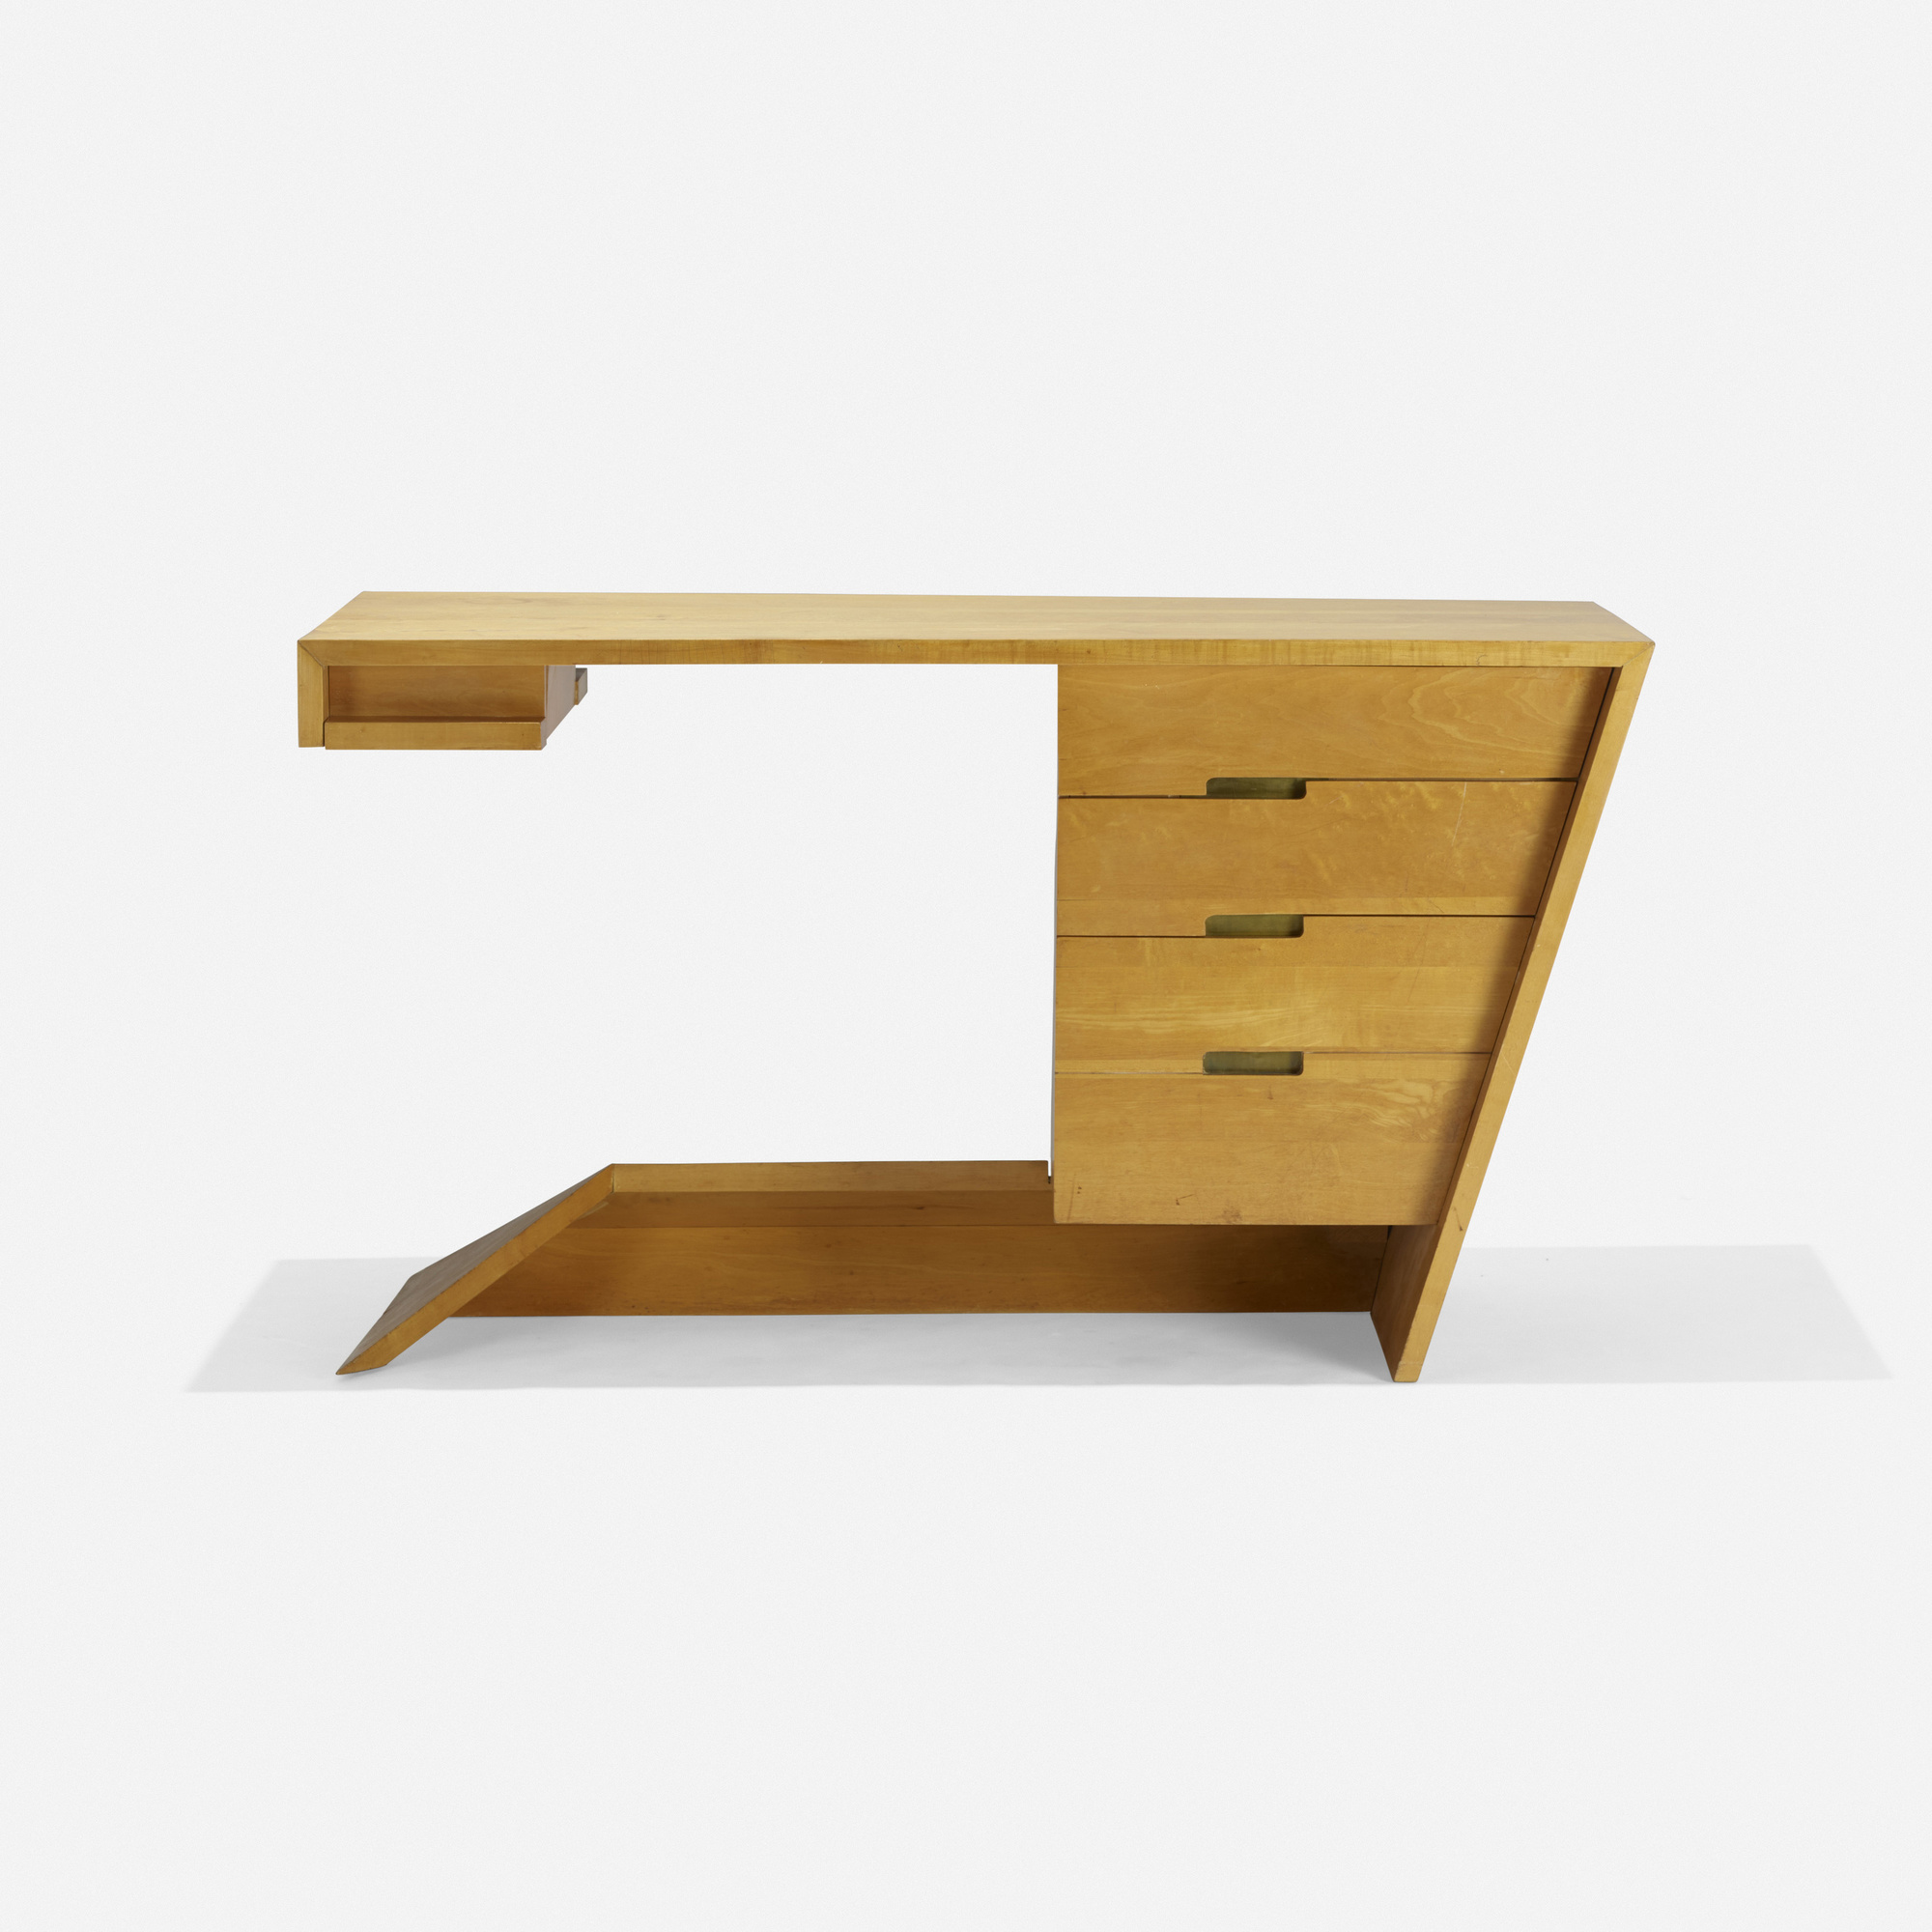 238: Dan Johnson / desk (1 of 5)